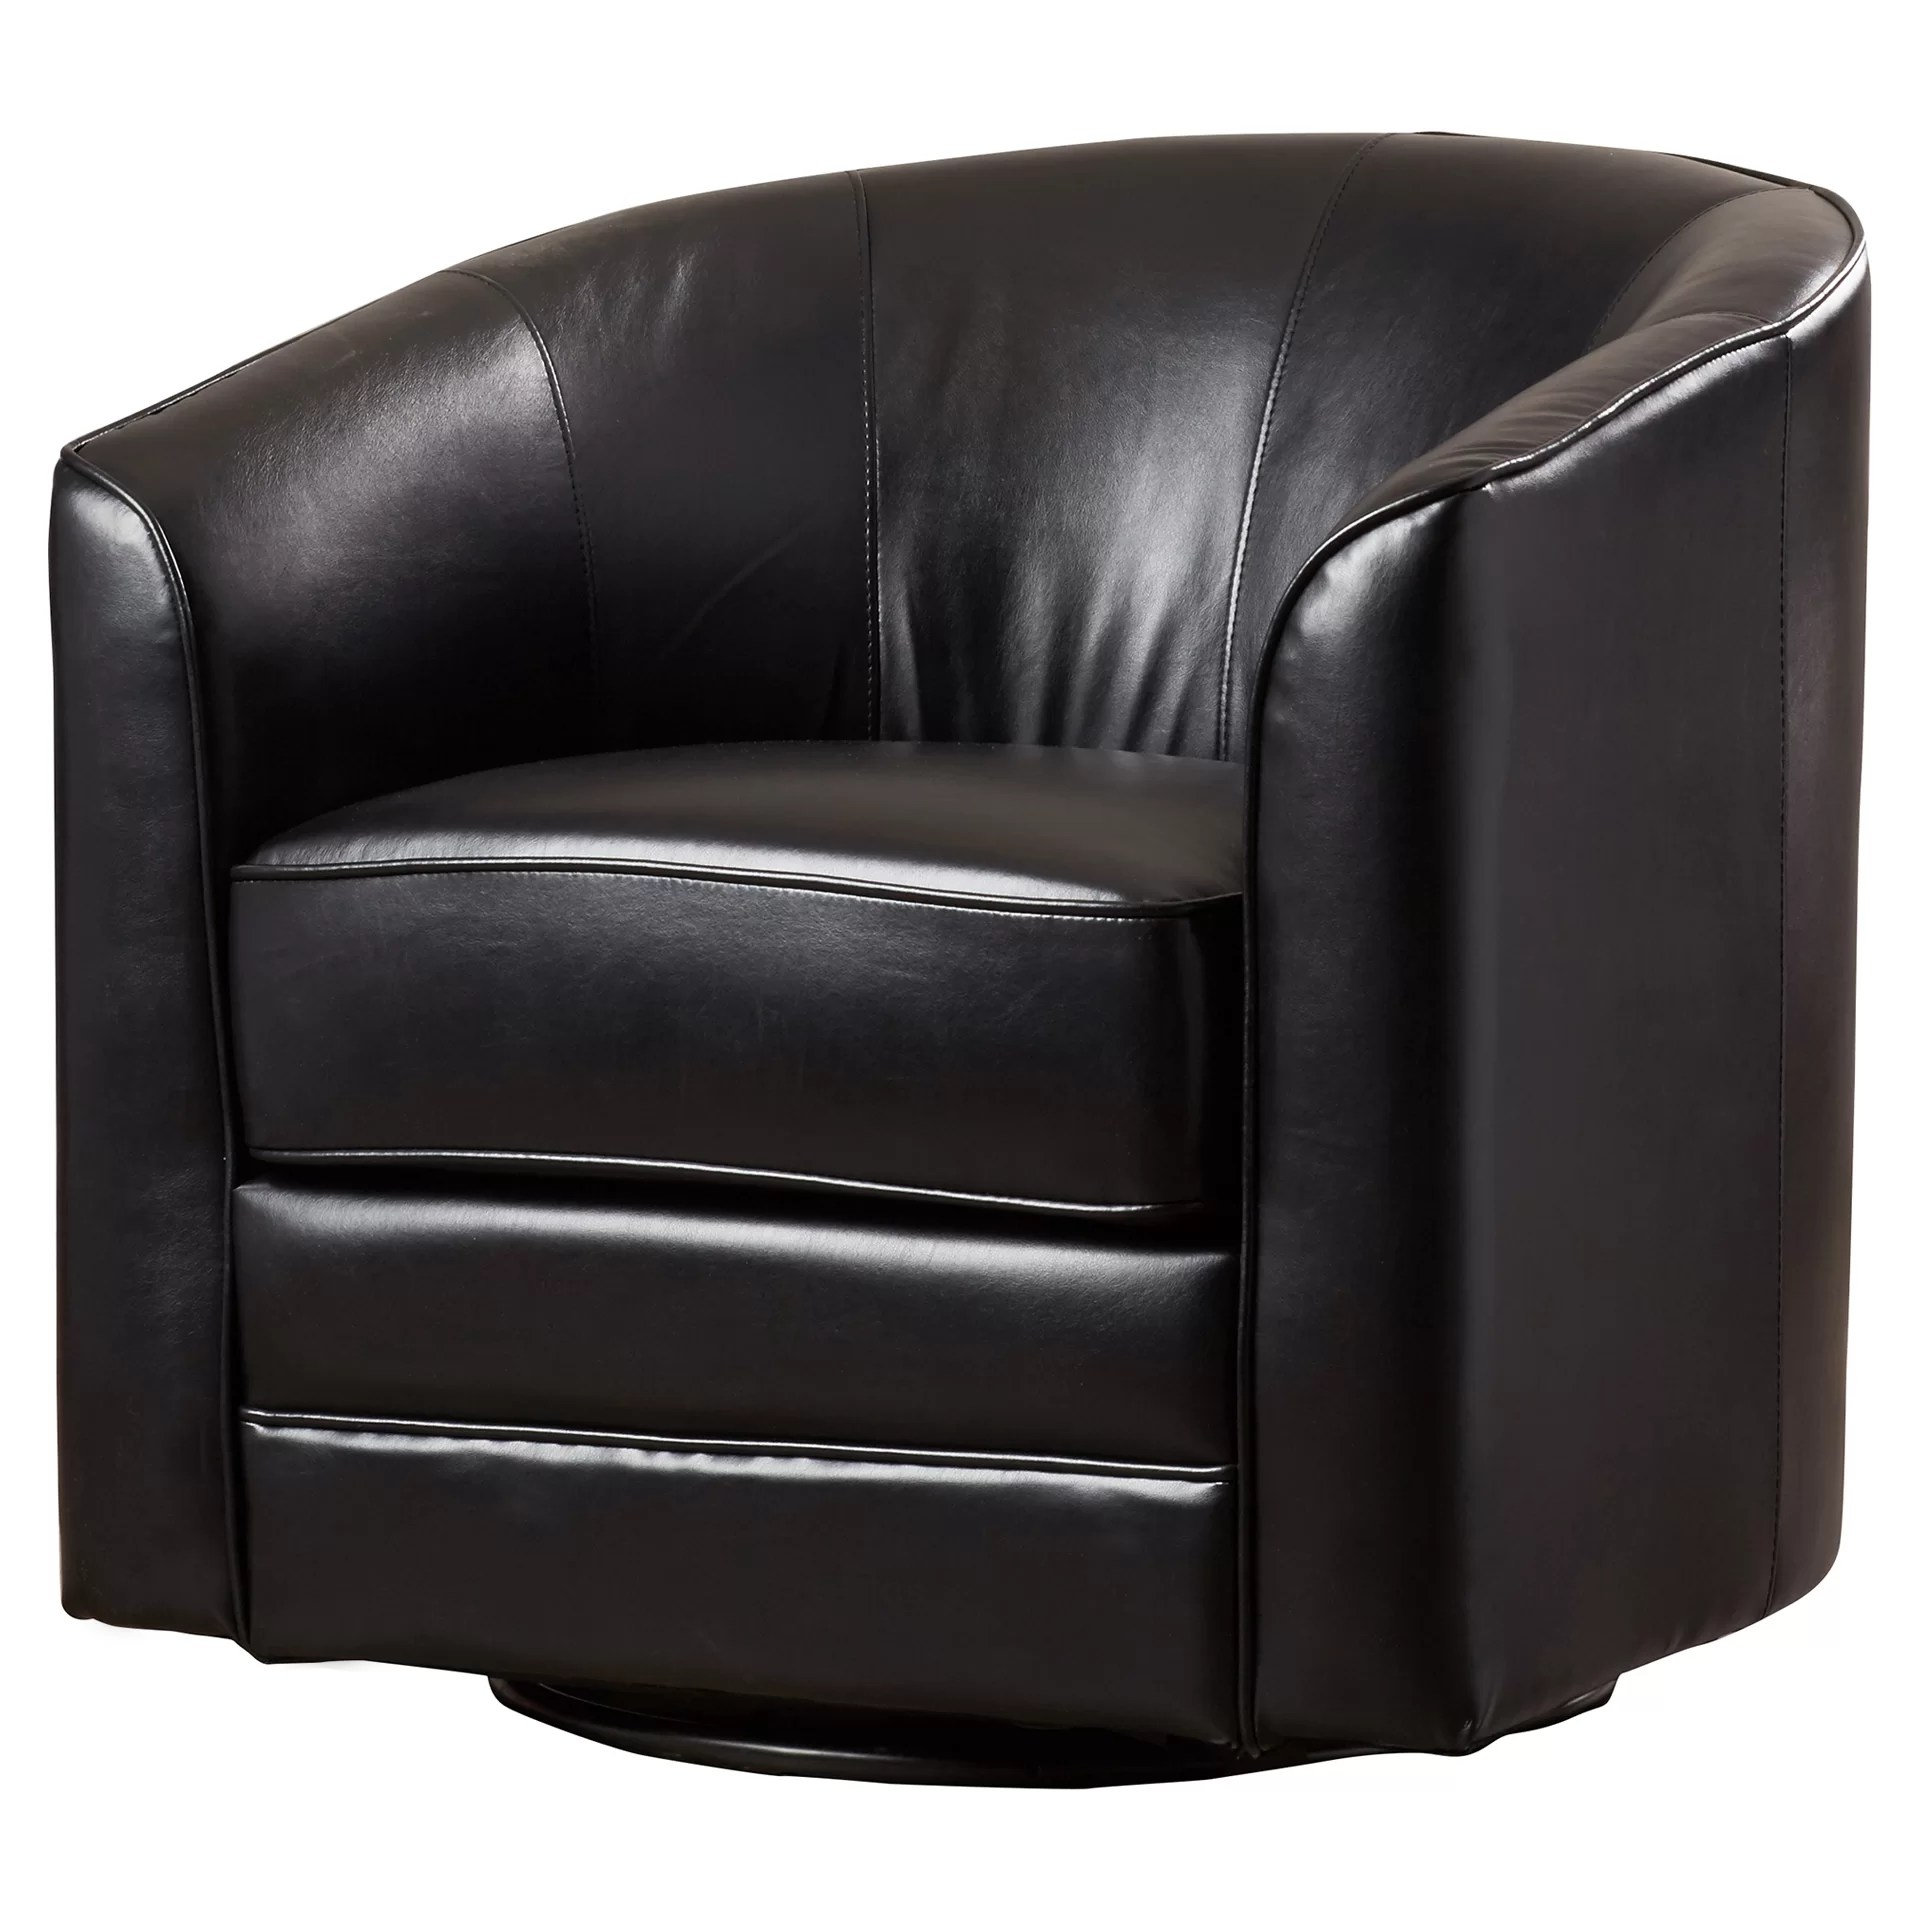 Barrel Swivel Chair Andover Mills Wells Swivel Barrel Chair And Reviews Wayfair